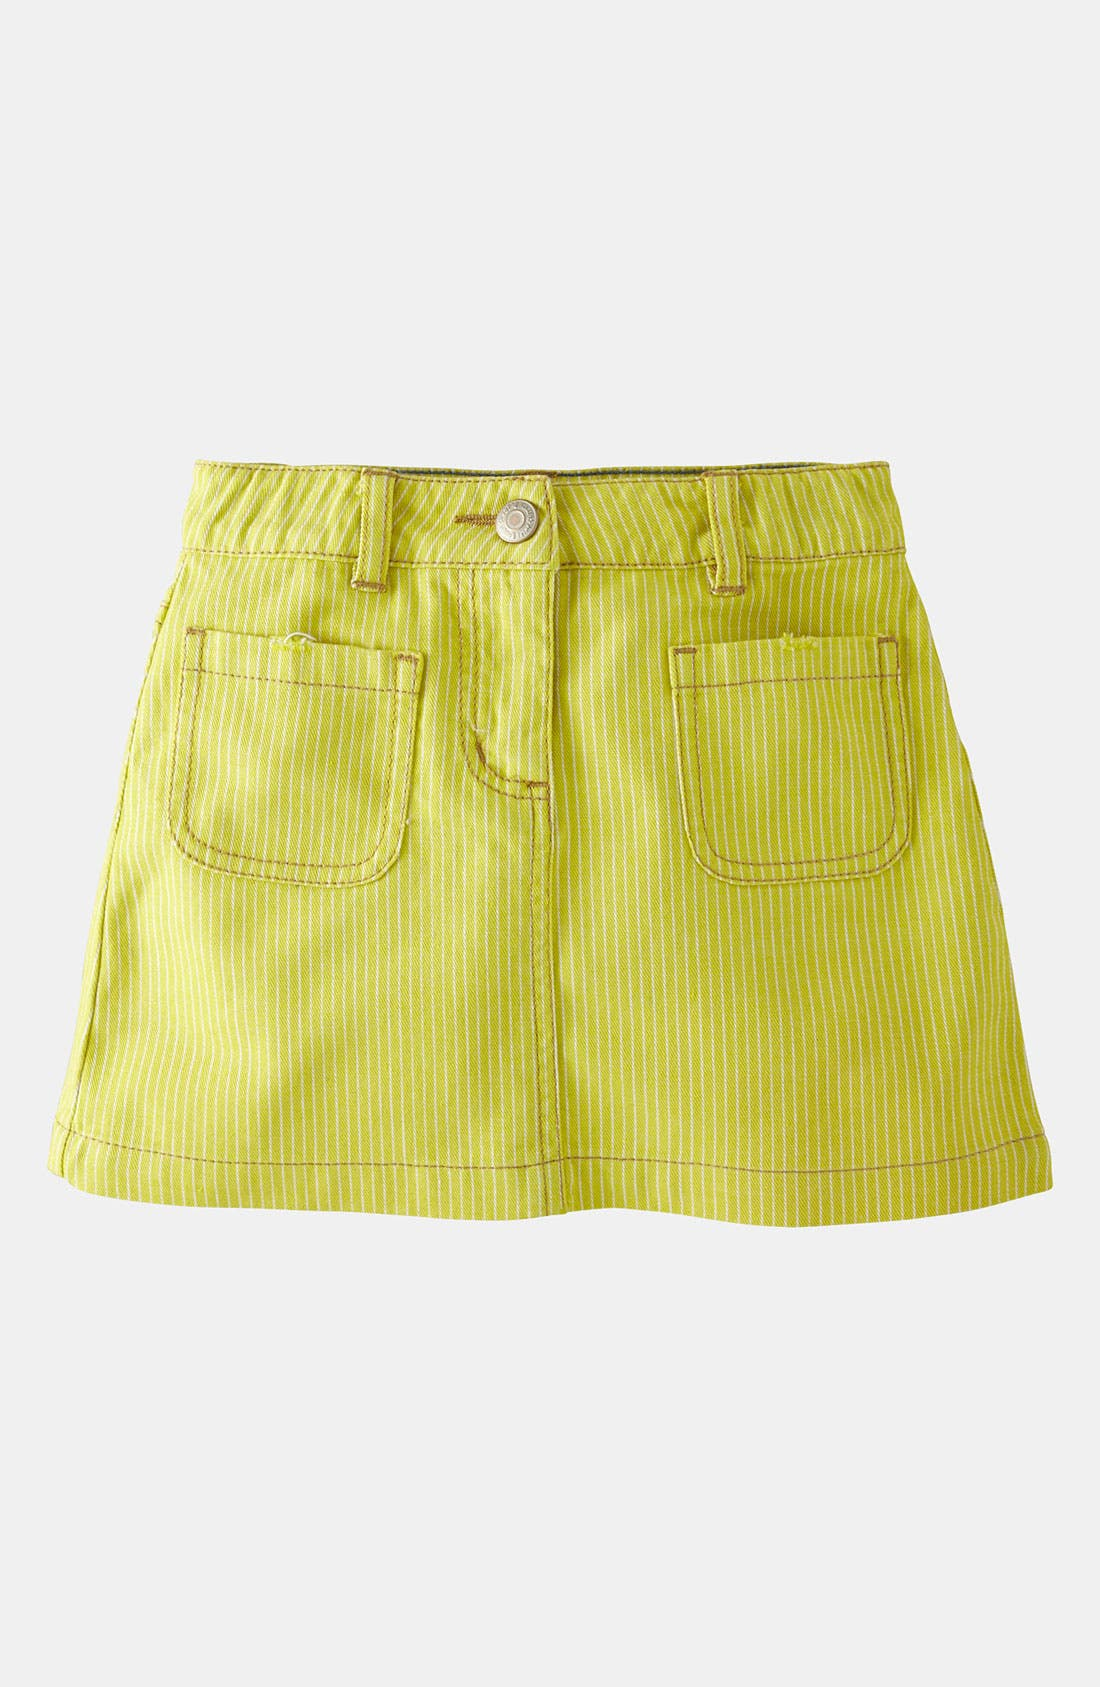 Alternate Image 1 Selected - Mini Boden 'Patch Pocket' Skirt (Little Girls & Big Girls)